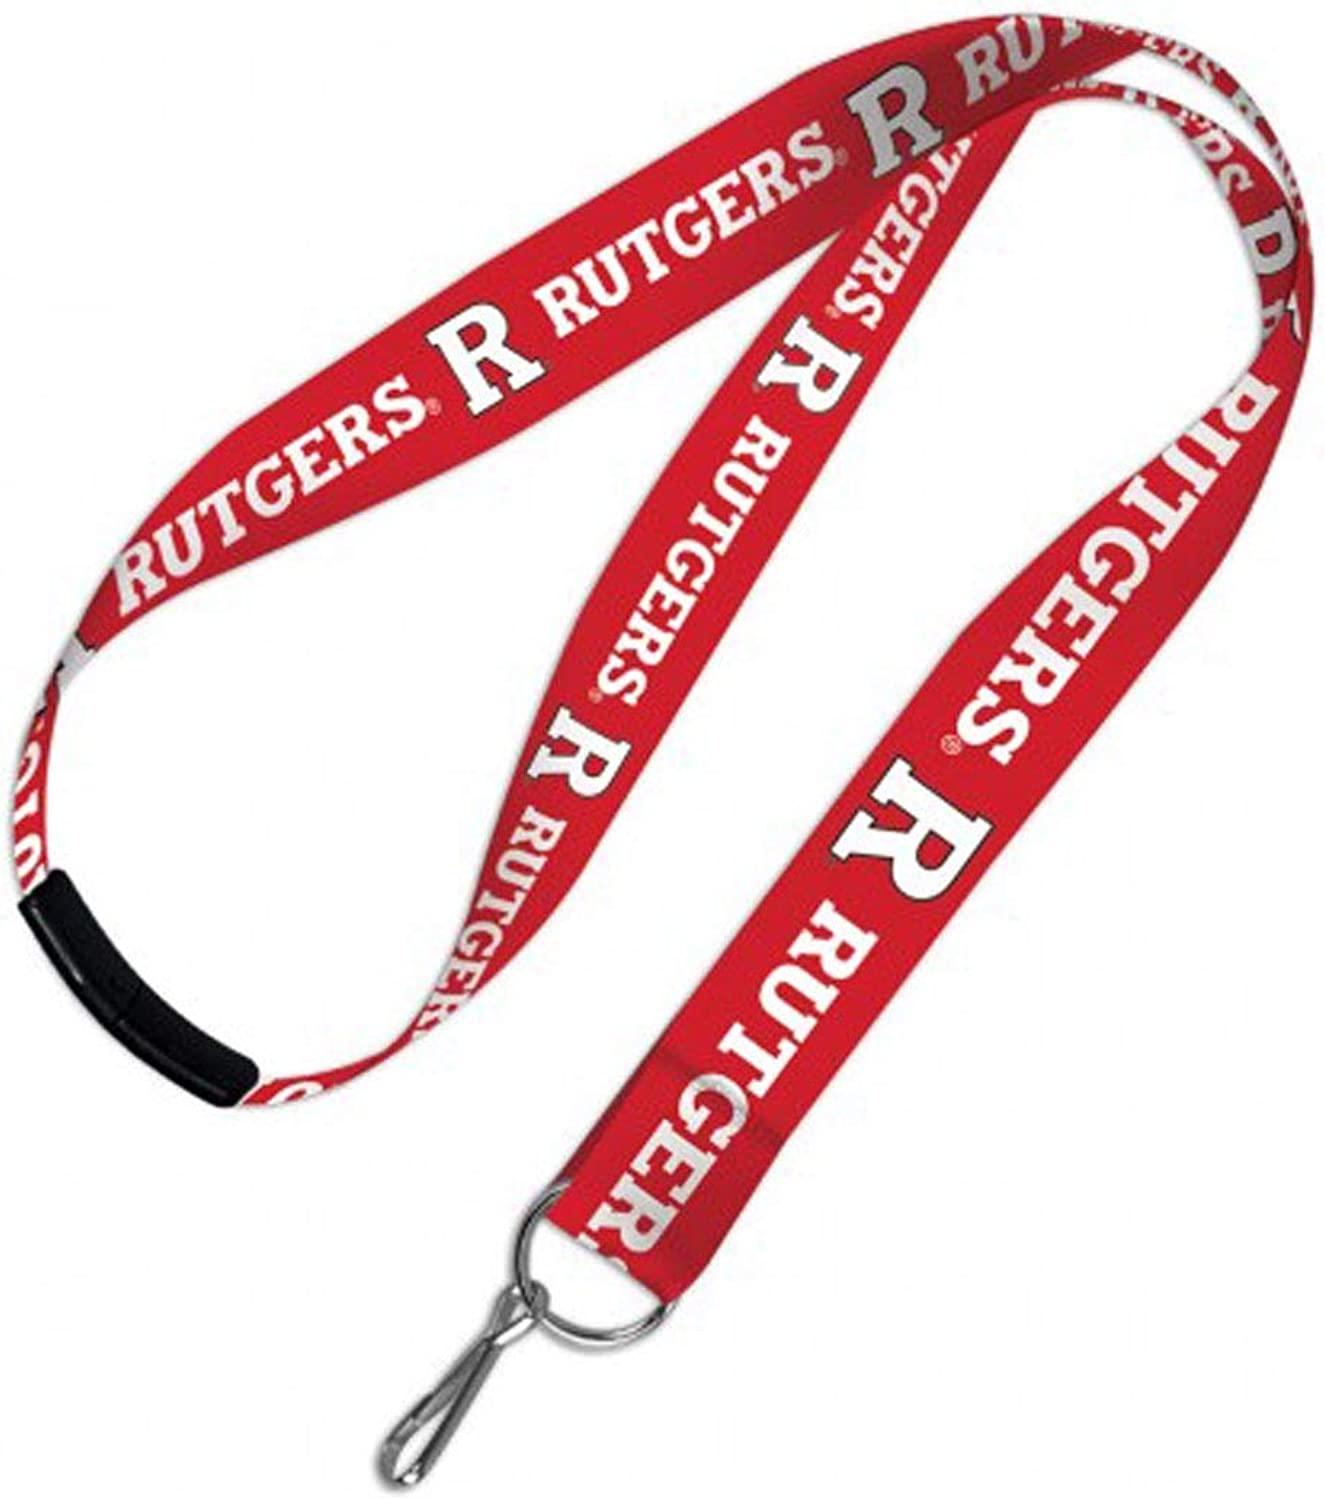 Rutgers Lanyard Id Holder with Safety Breakaway Clasp, 19 inches Long, 1 inch Wide